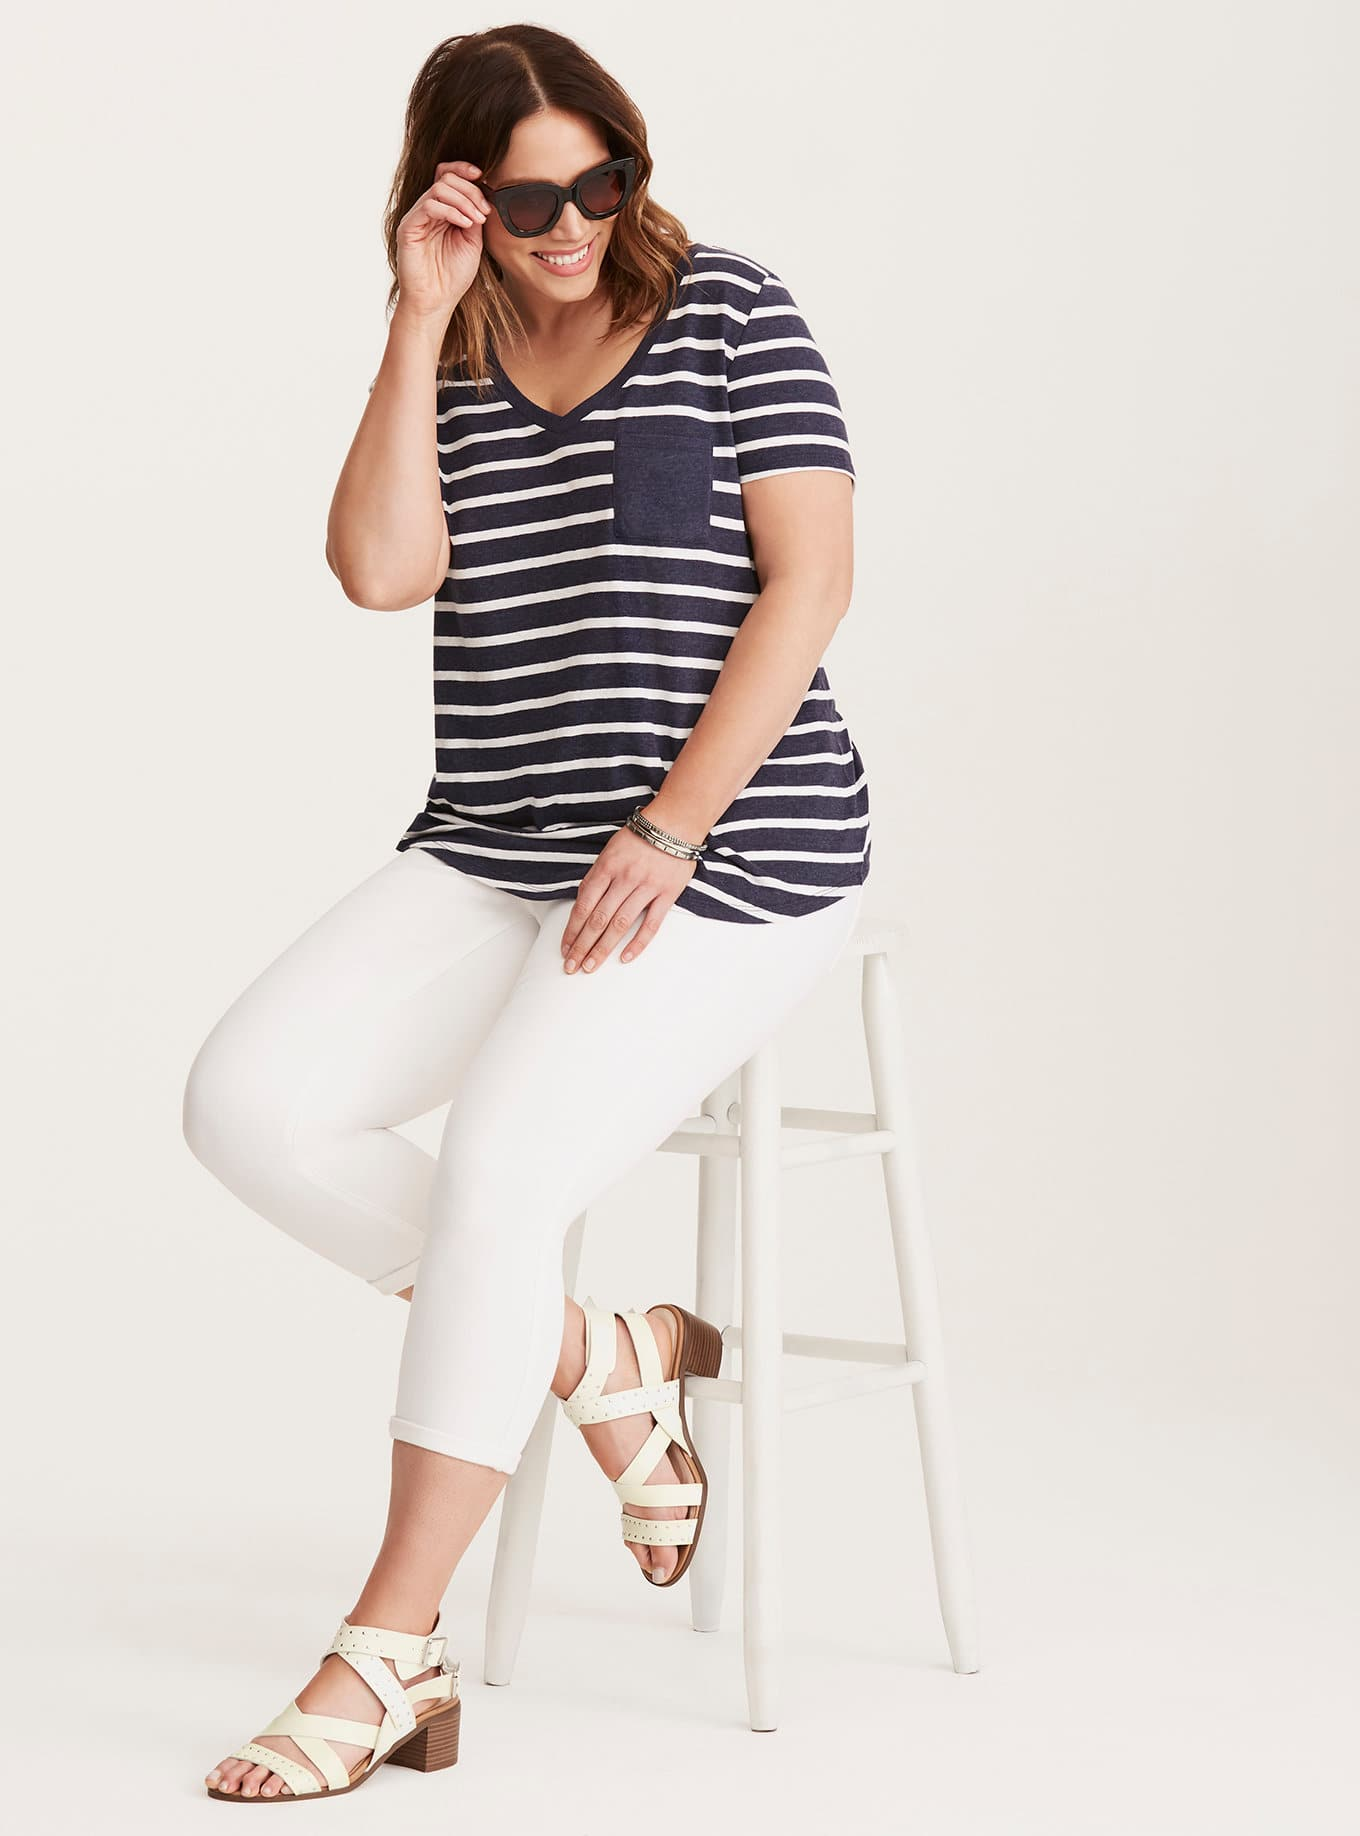 Torrid 48 Hour Flash Sale up to 50% Off $9.49